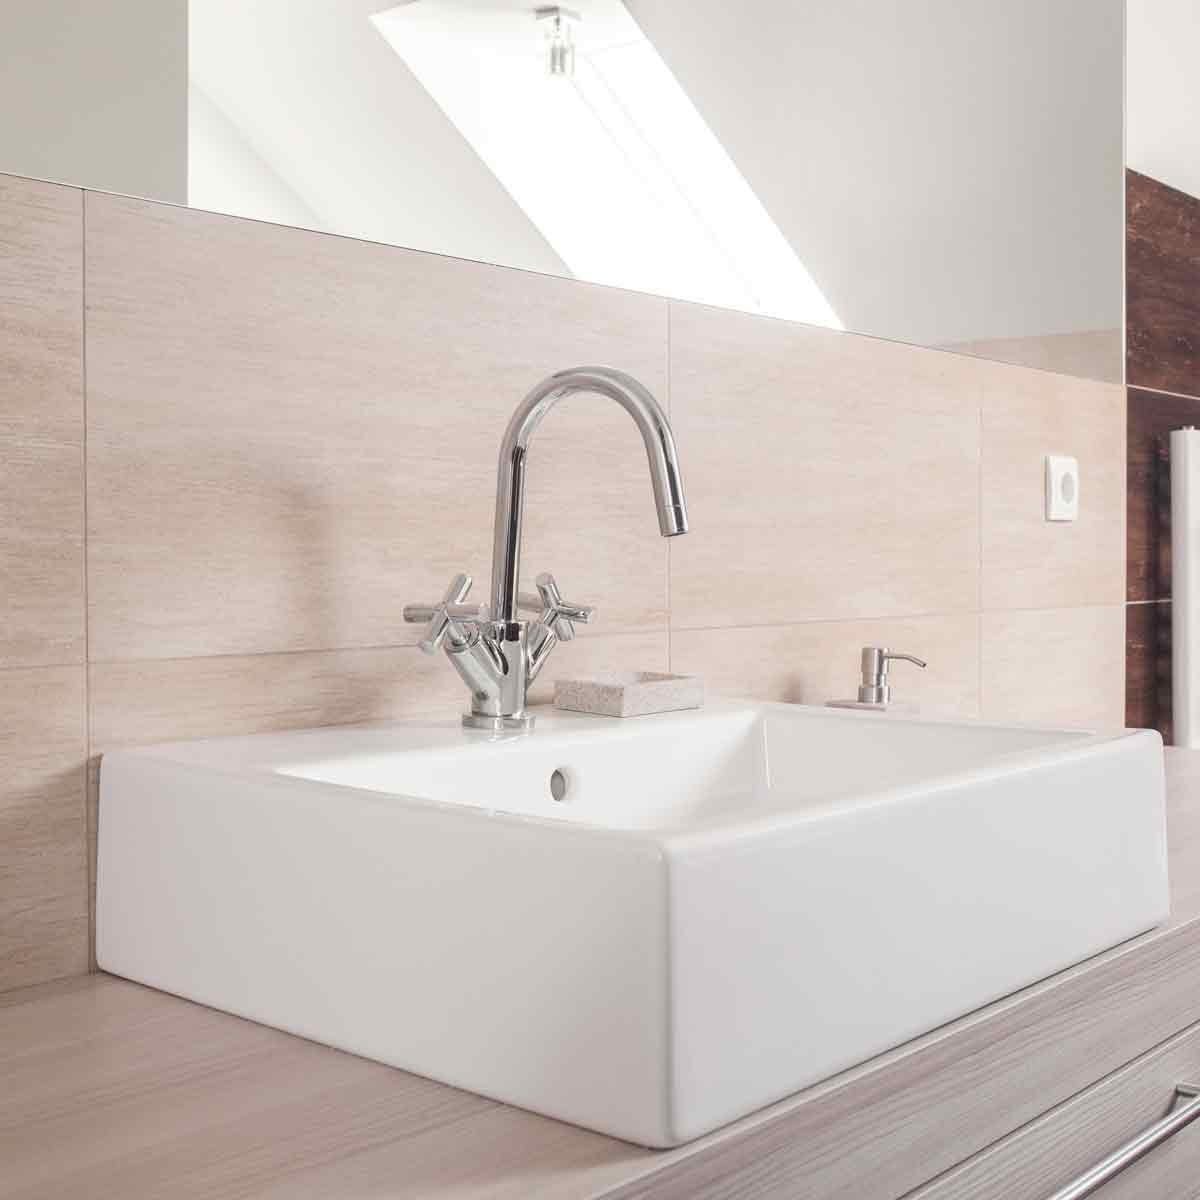 Neutral-colored-bathroom-with-Square-ceramic-sink-and-shiny-chrome-faucet